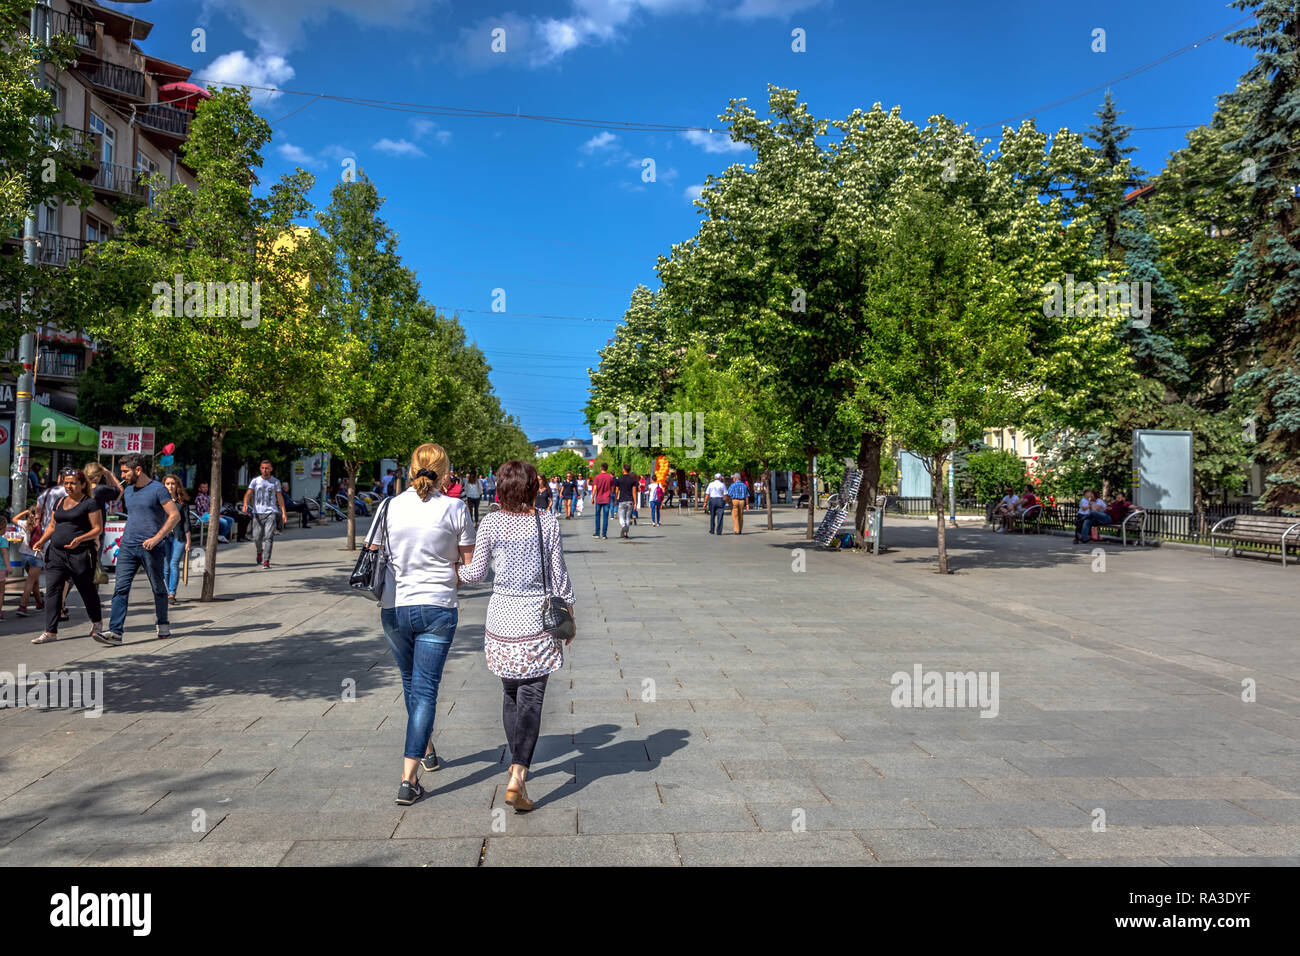 Pristina, Kosovo - May 30th 2018 - Big group of people walking in a wide pavement with big green trees and blue sky in Pristina, capital of Kosovo Stock Photo